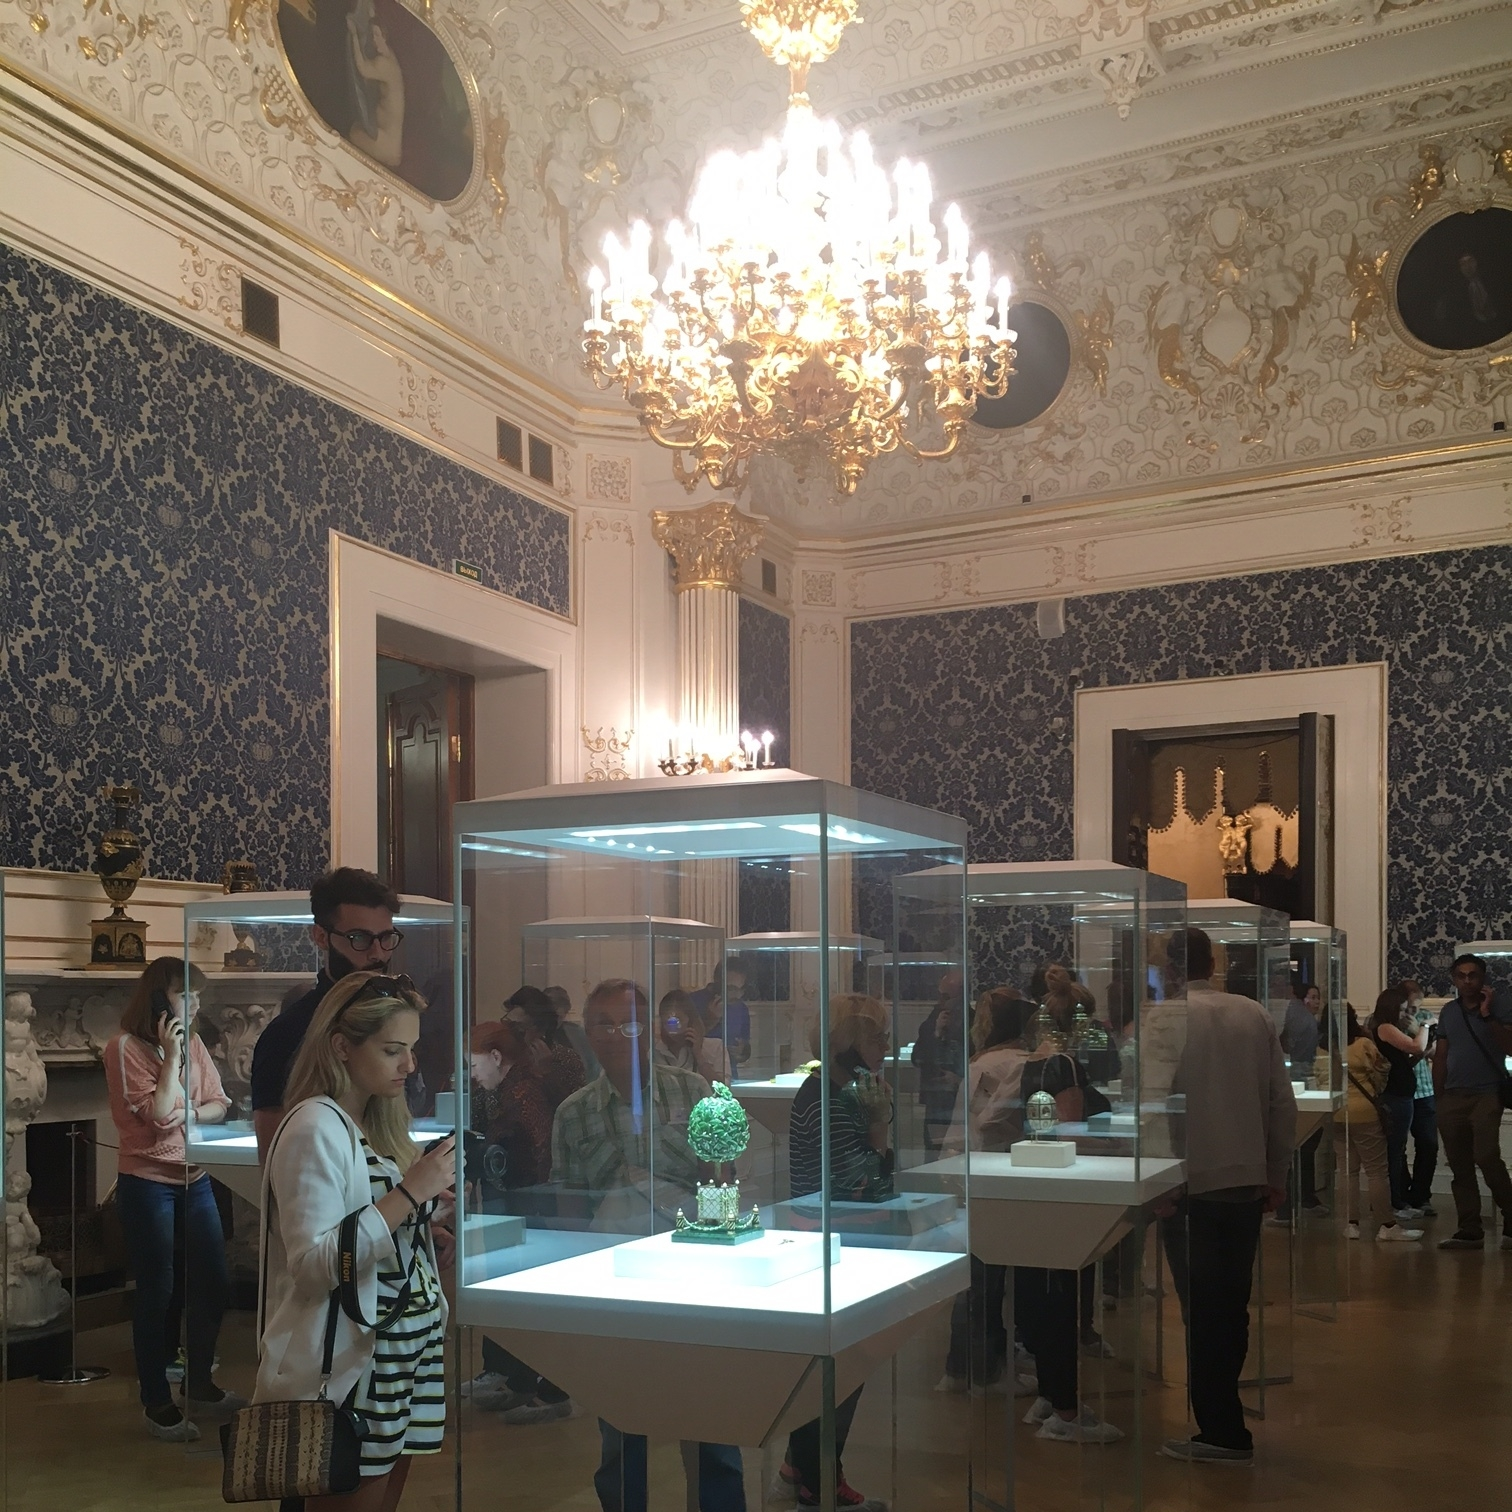 Faberge Museum, St Petersburg by The Doubtful Traveller